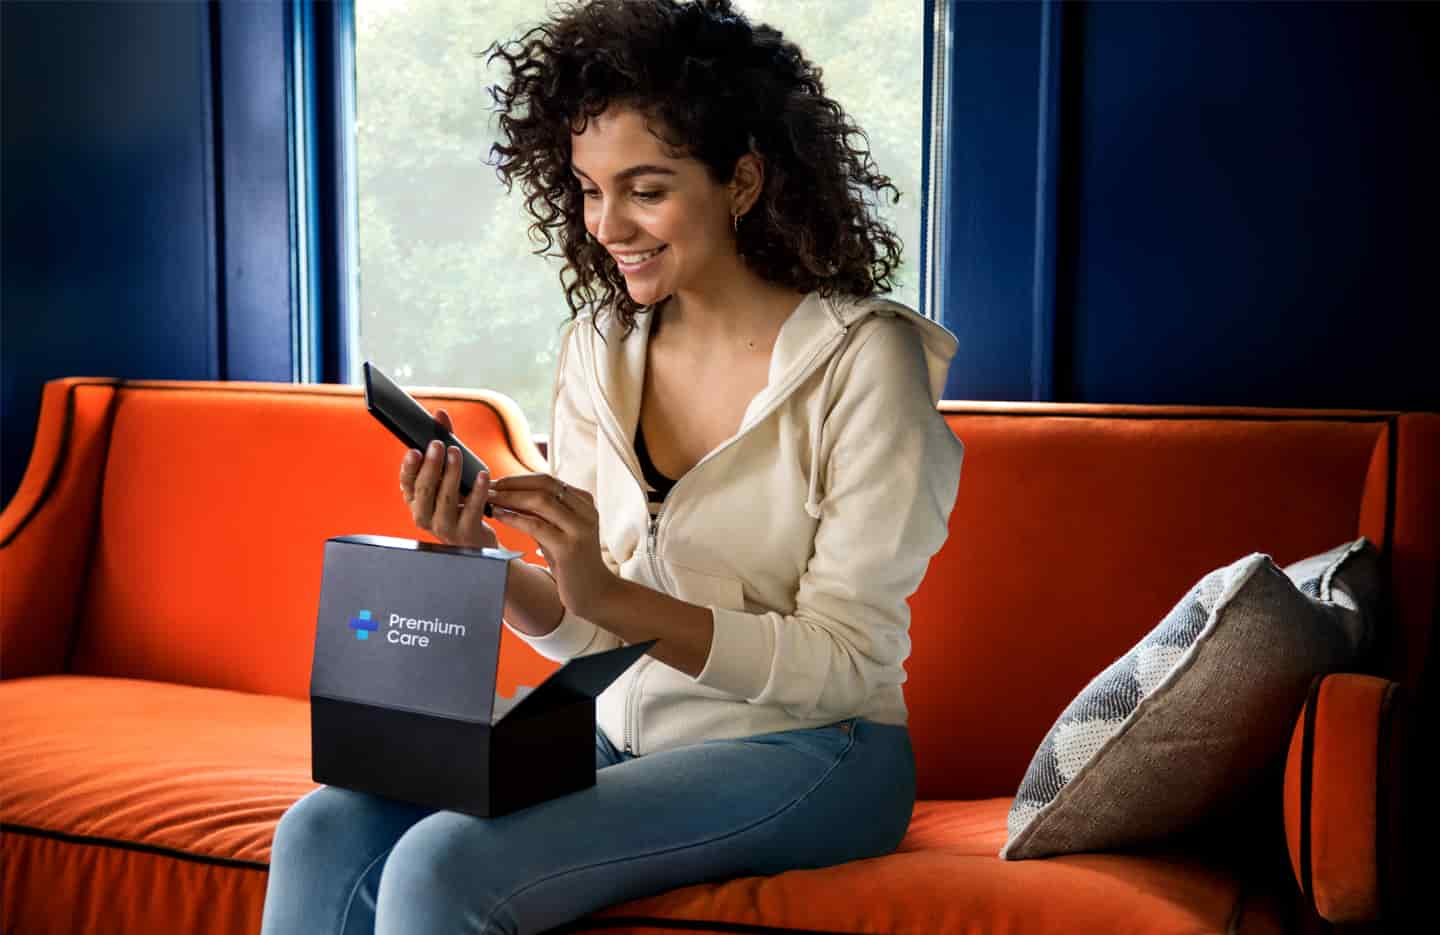 Woman opening Samsung Premium Care package